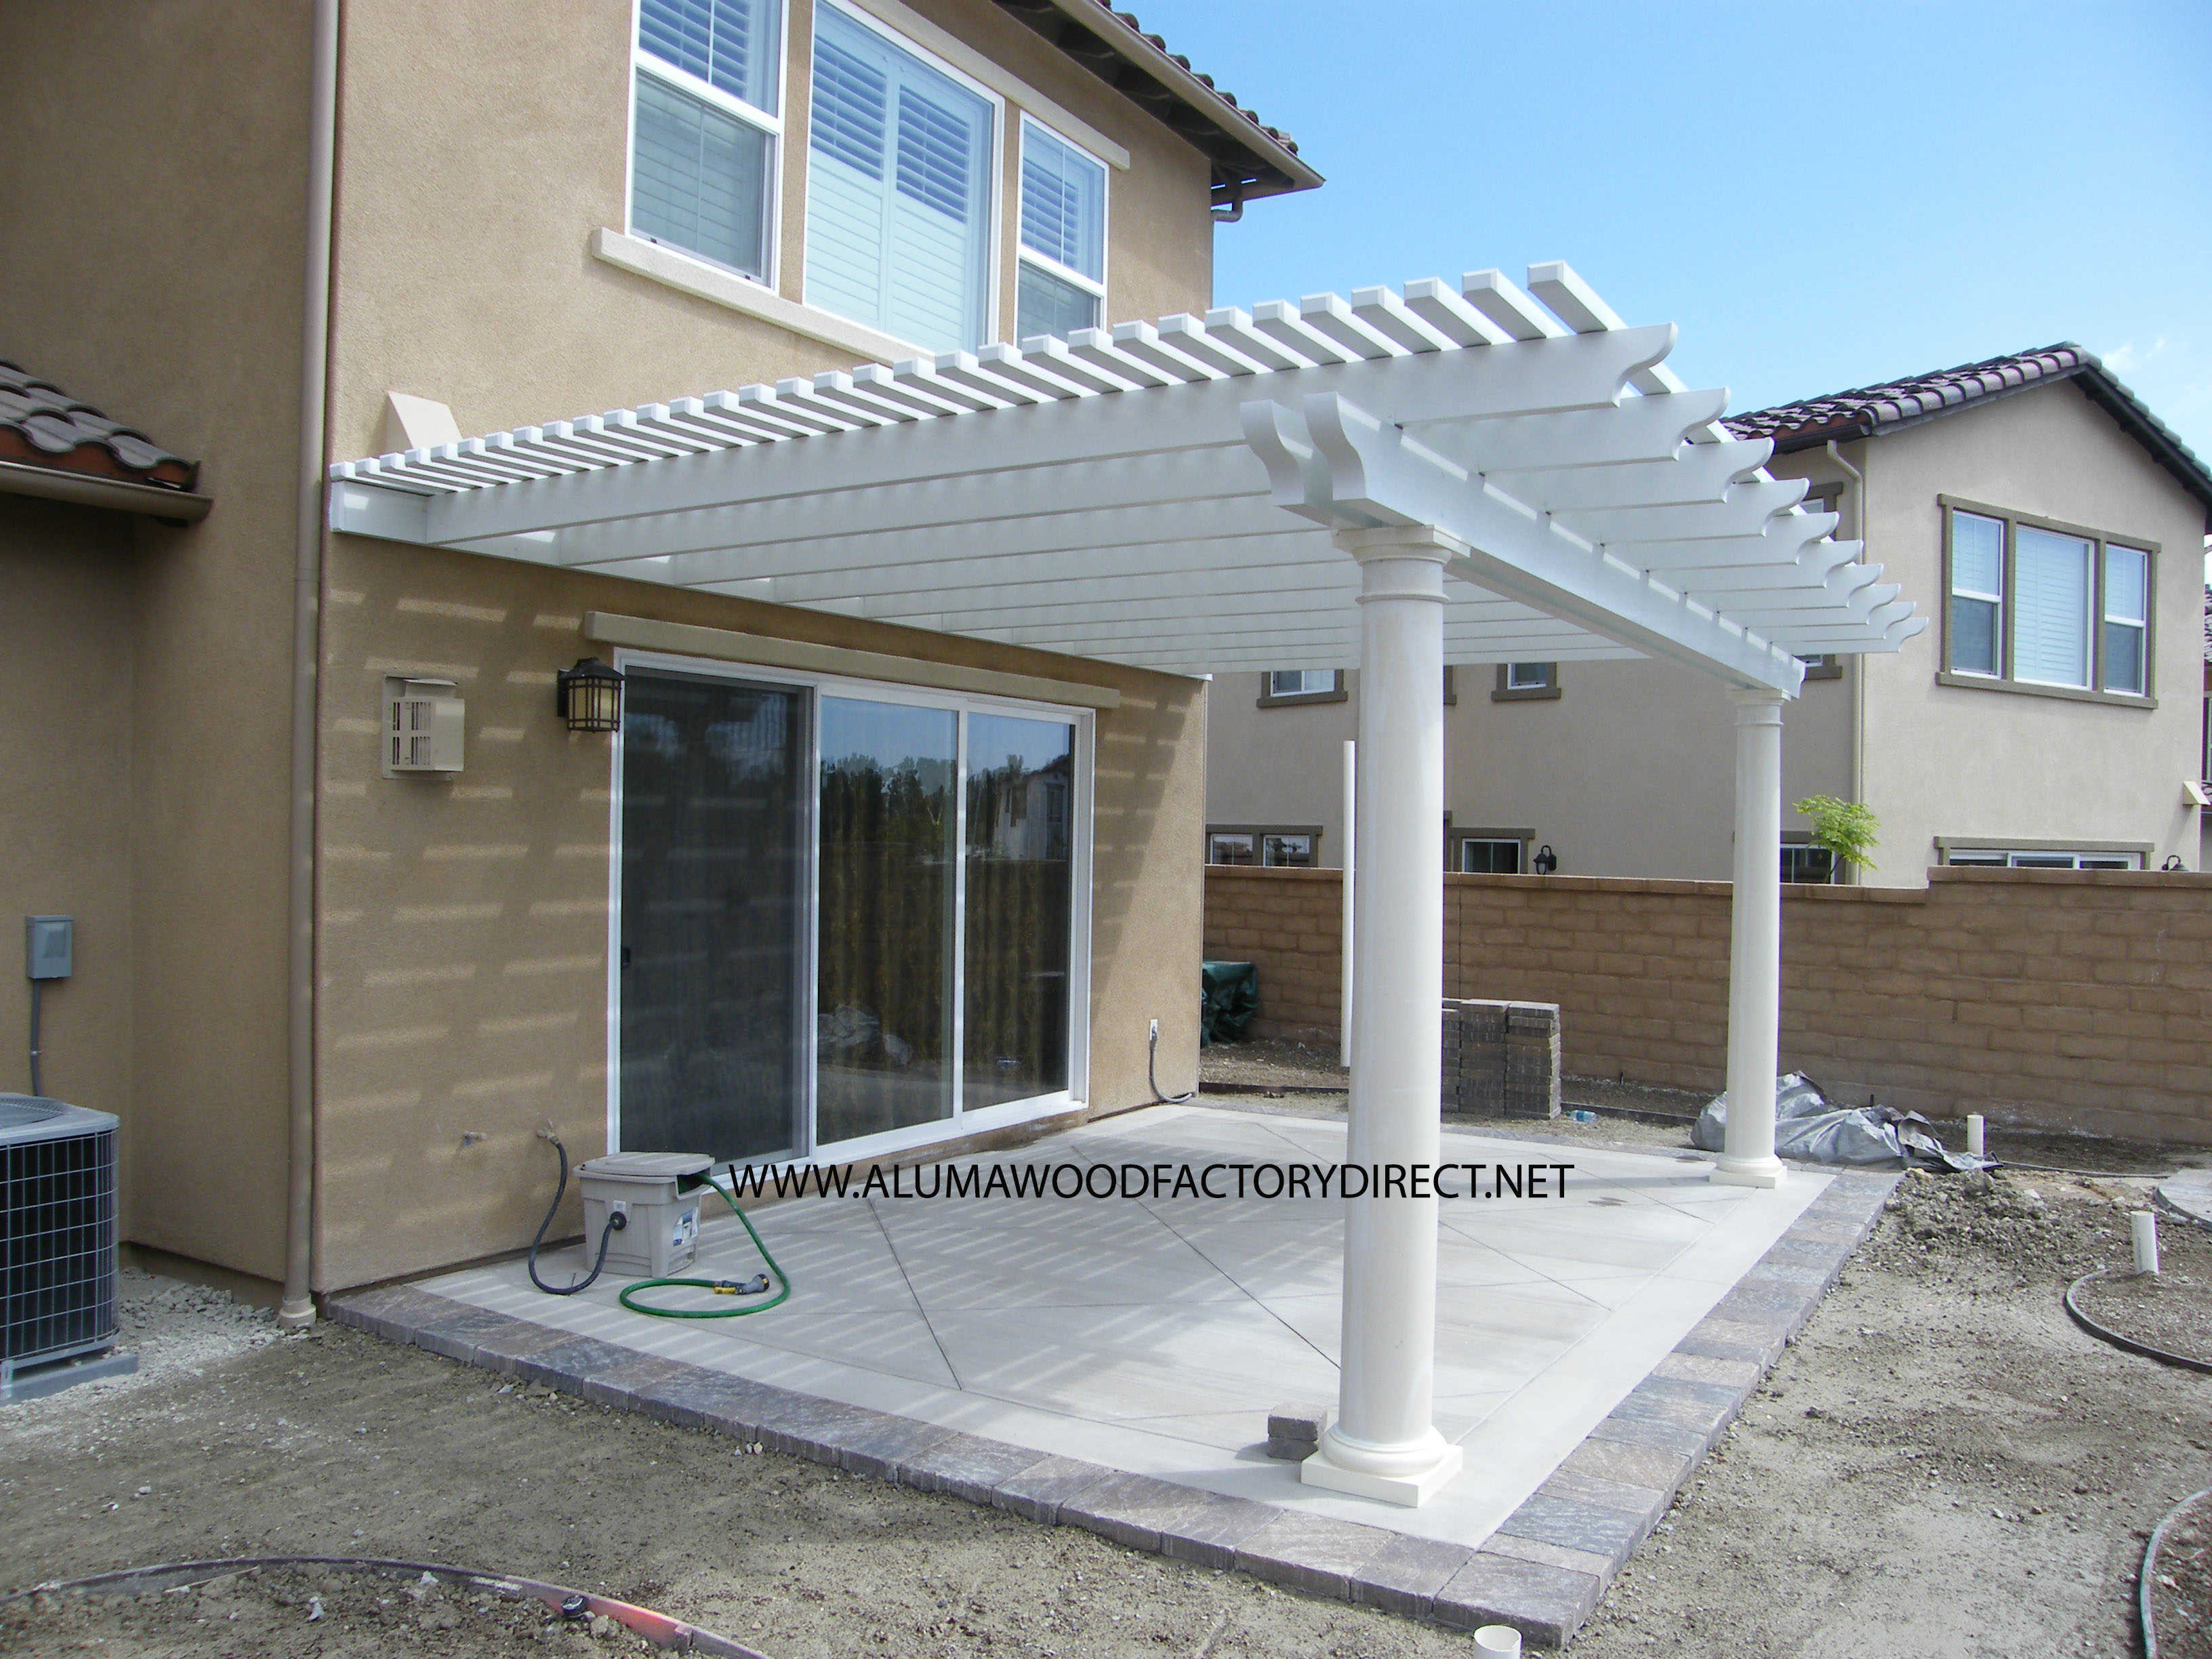 aluma wood patio covers is not real